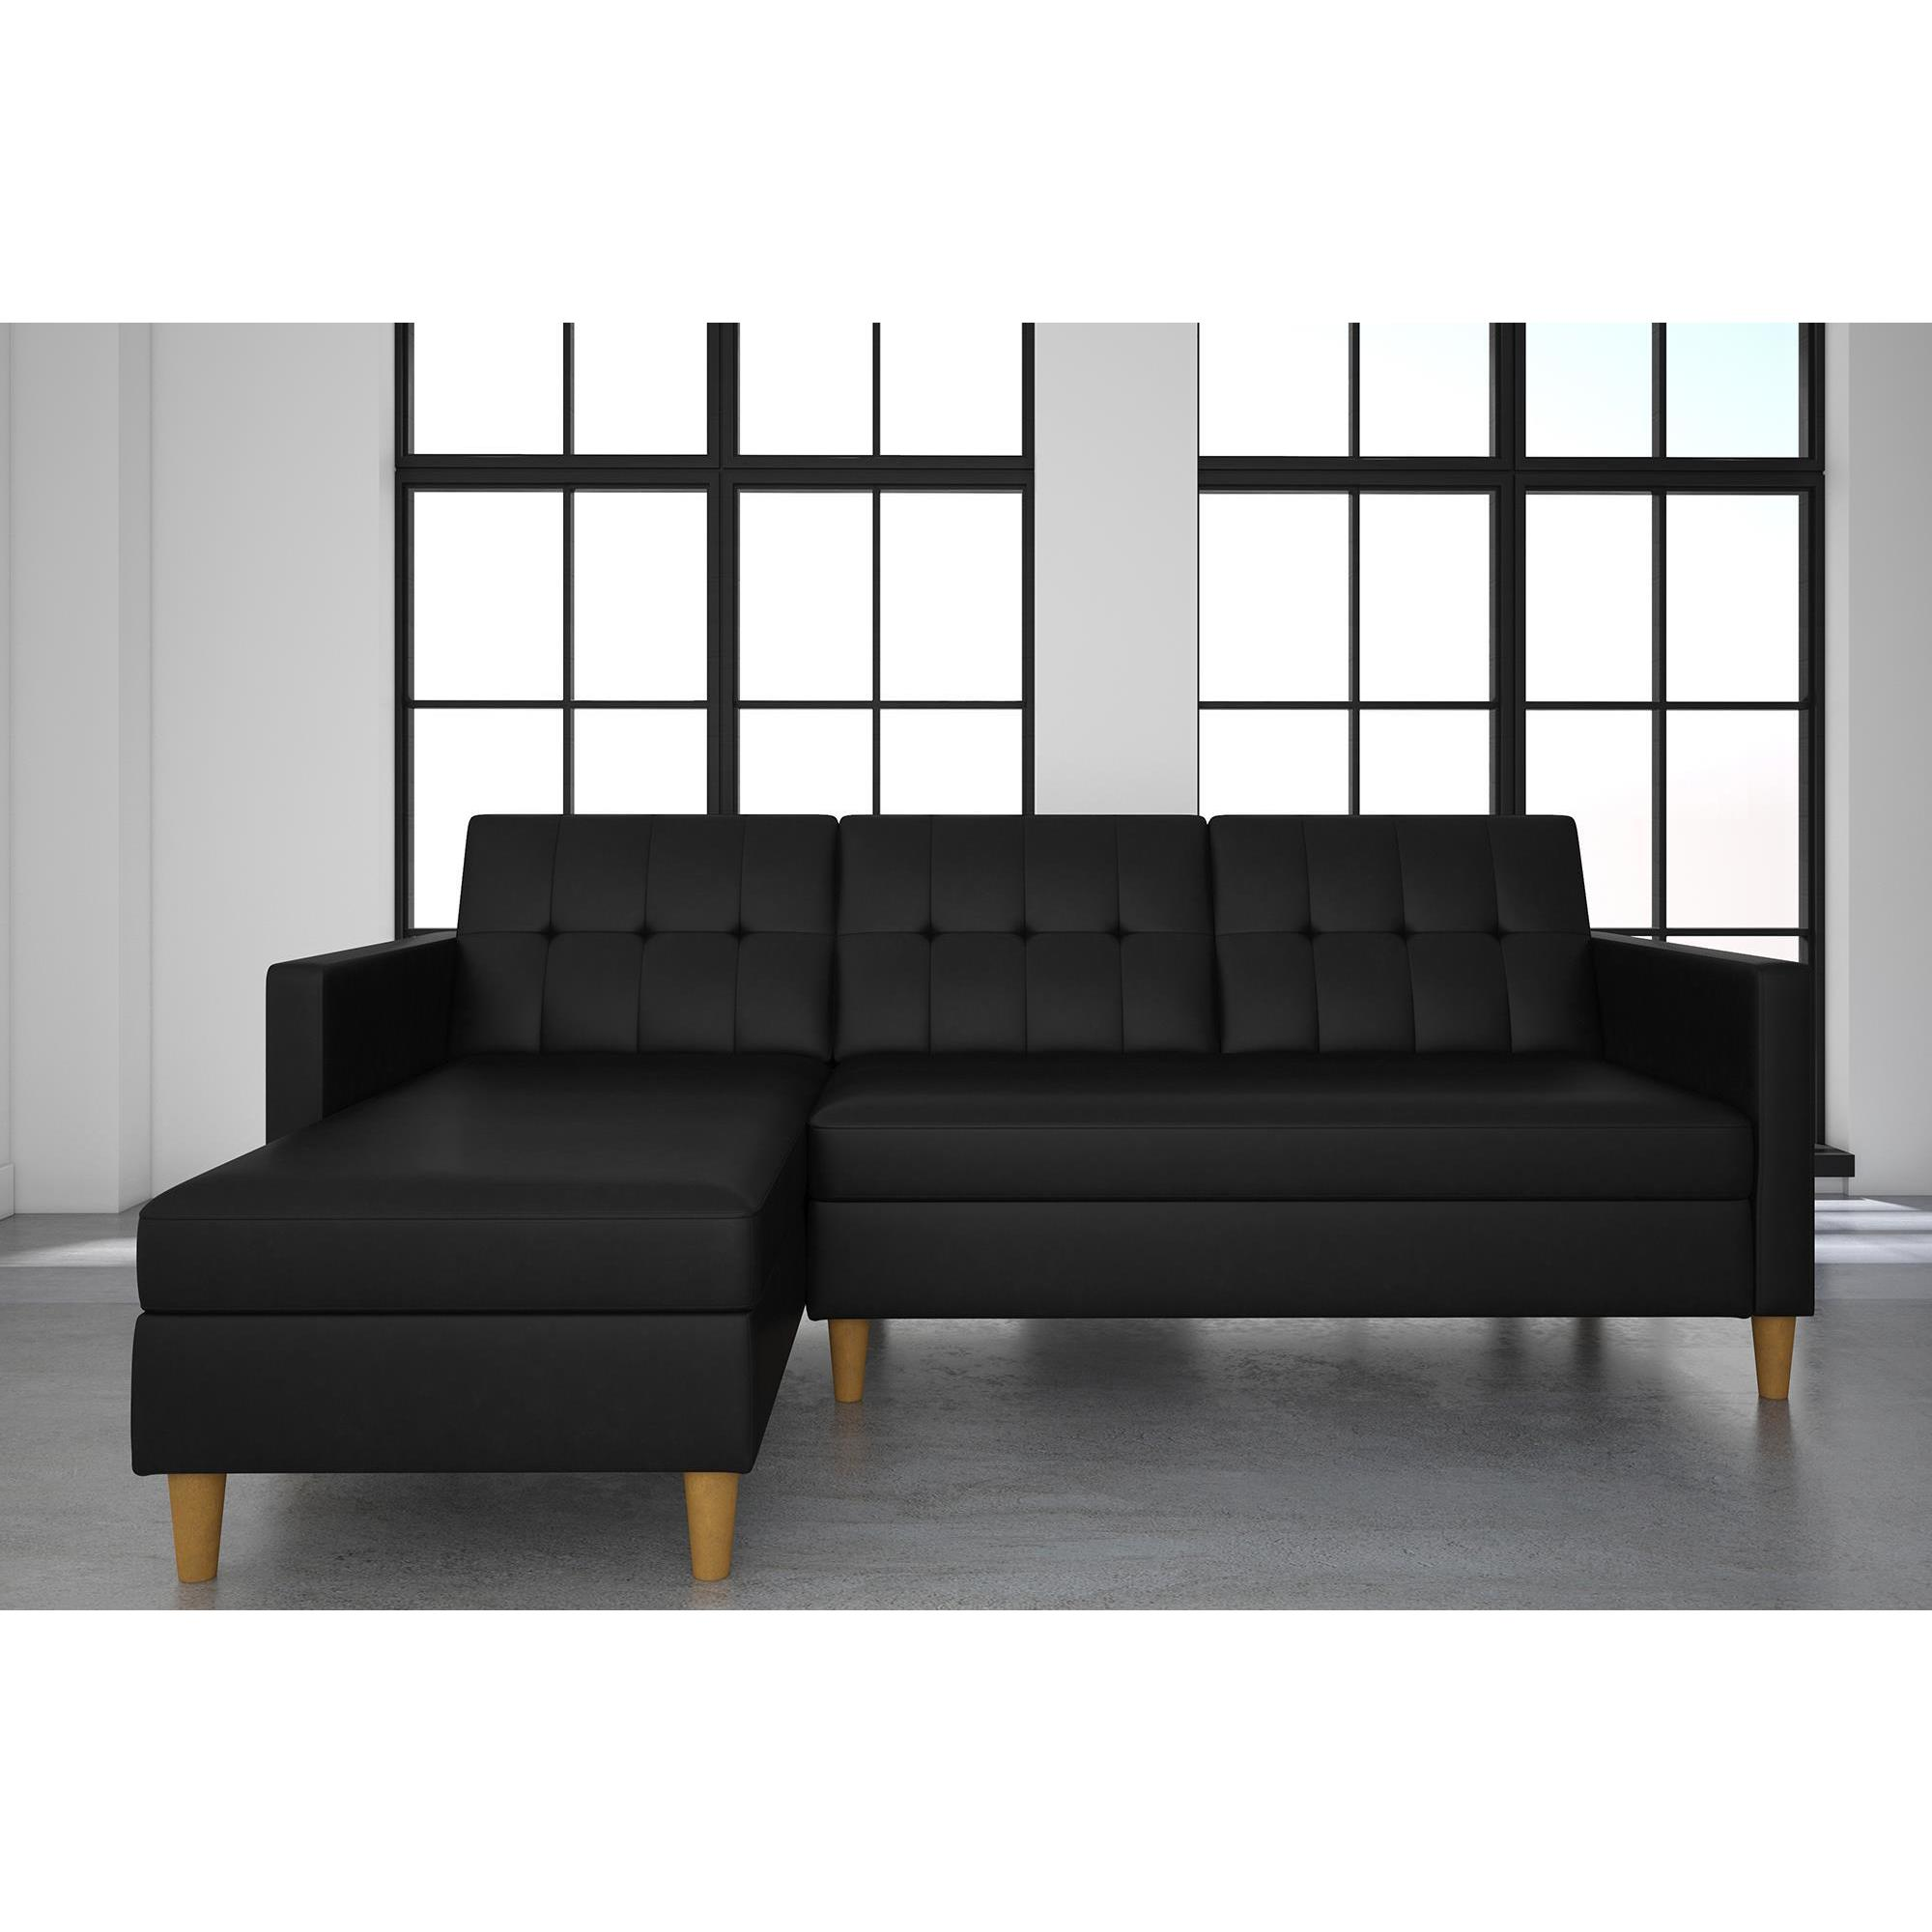 free today futons overstock chair less bed for living garden product shipping victor simple home futon